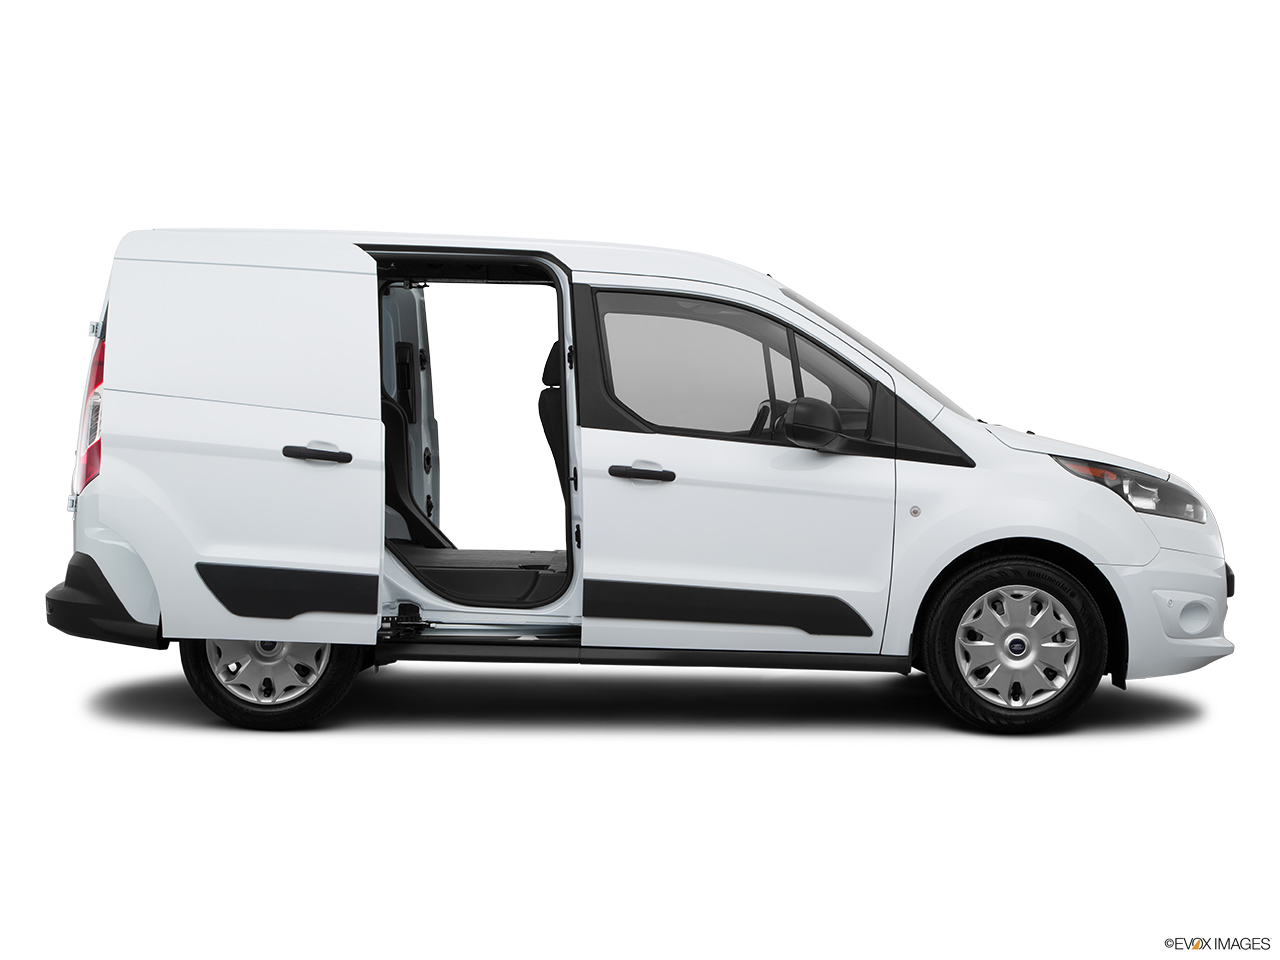 Ford Transit Van >> 2015 Ford Transit Connect SWB XLT - Passenger's side view, sliding door open (vans only)